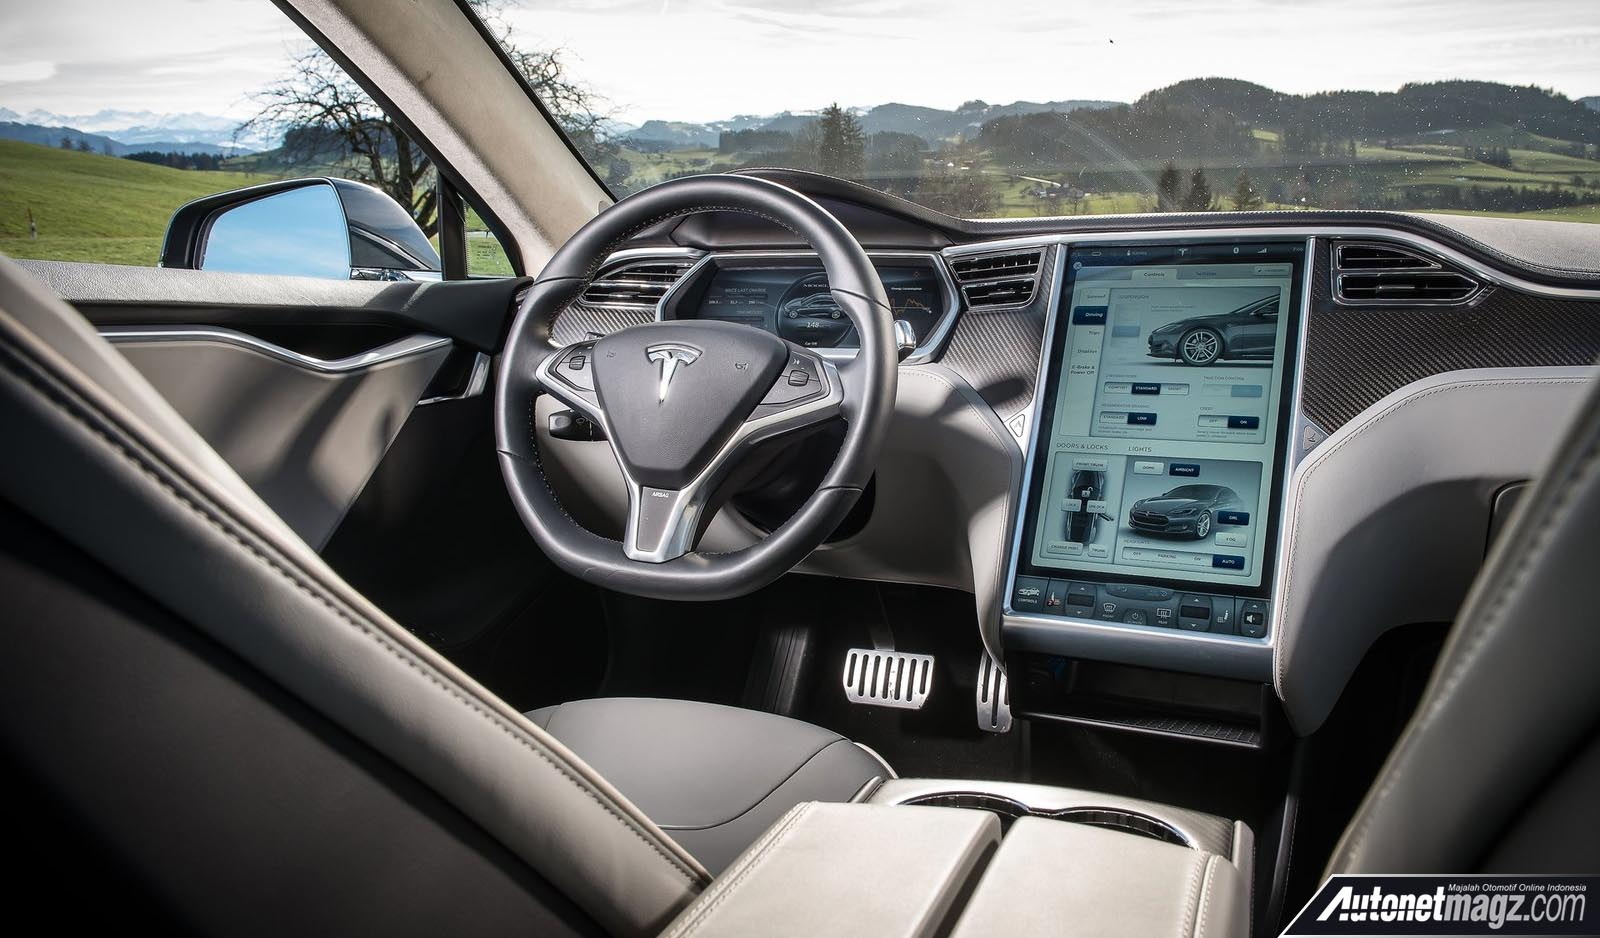 Tesla Model S Interior >> Tesla Model S 2013 Interior Autonetmagz Review Mobil